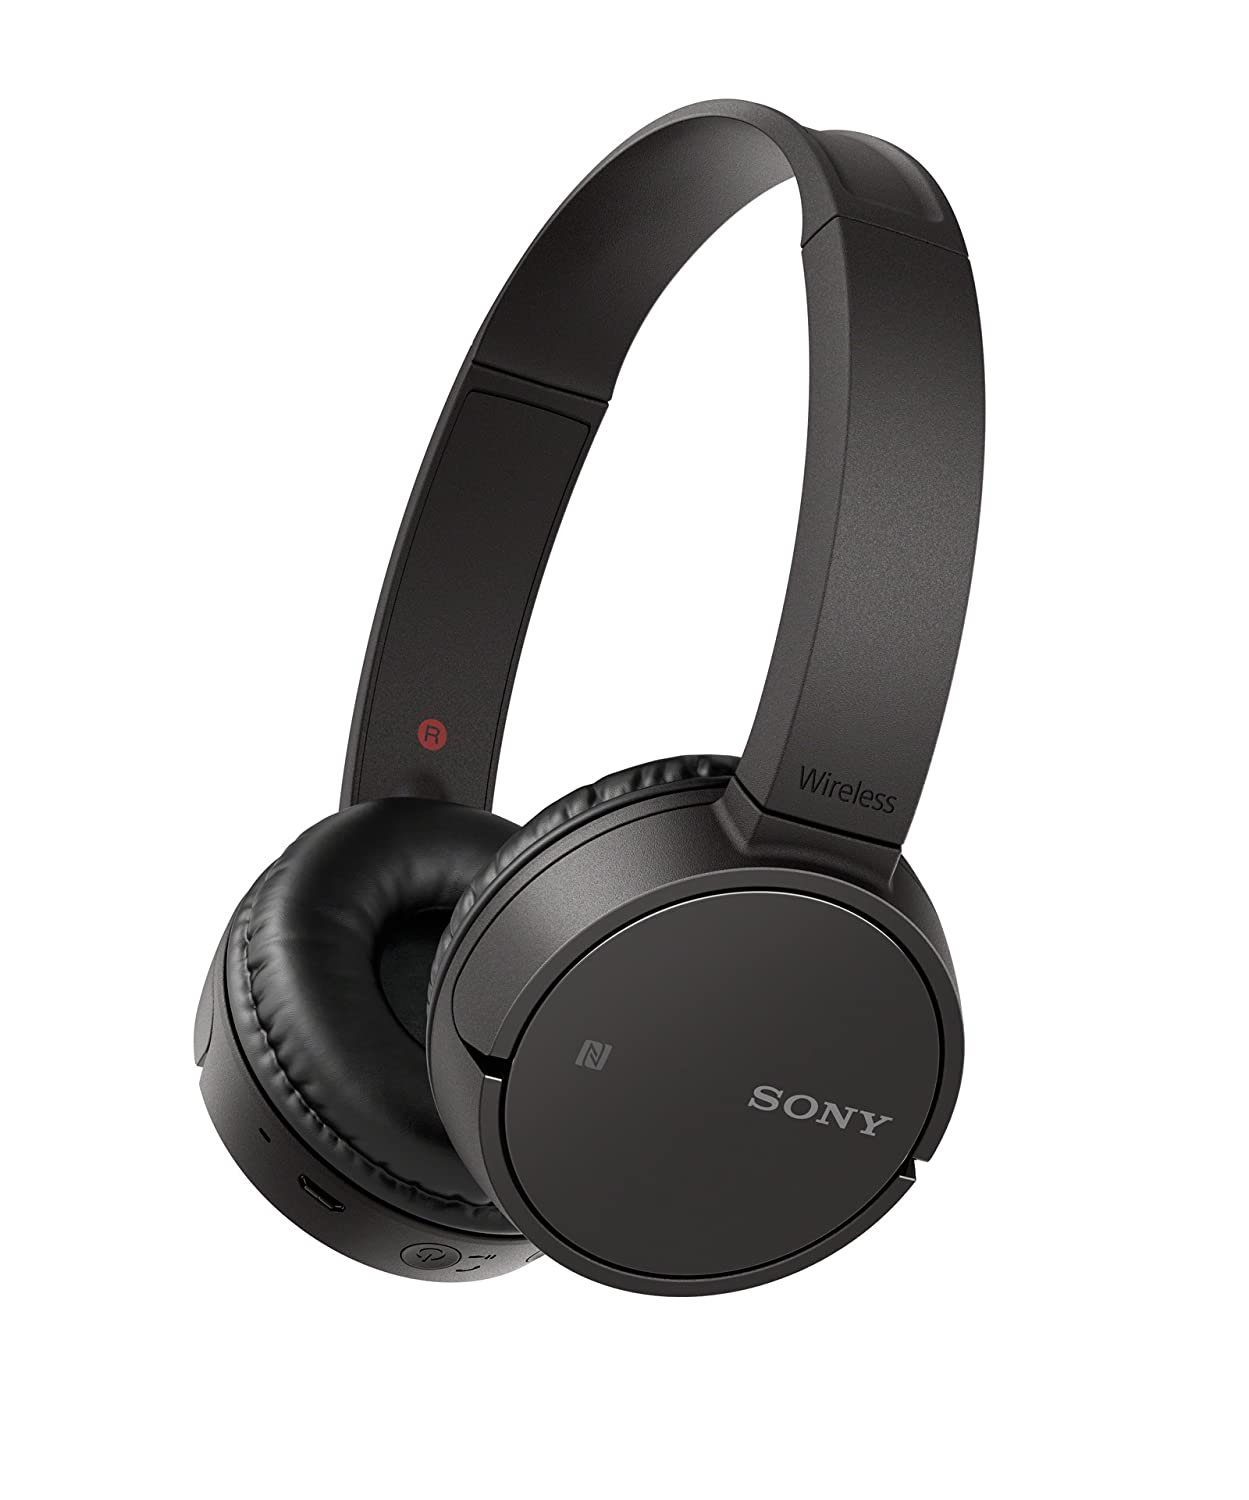 daily deals sony bluetooth headphones for under 40. Black Bedroom Furniture Sets. Home Design Ideas